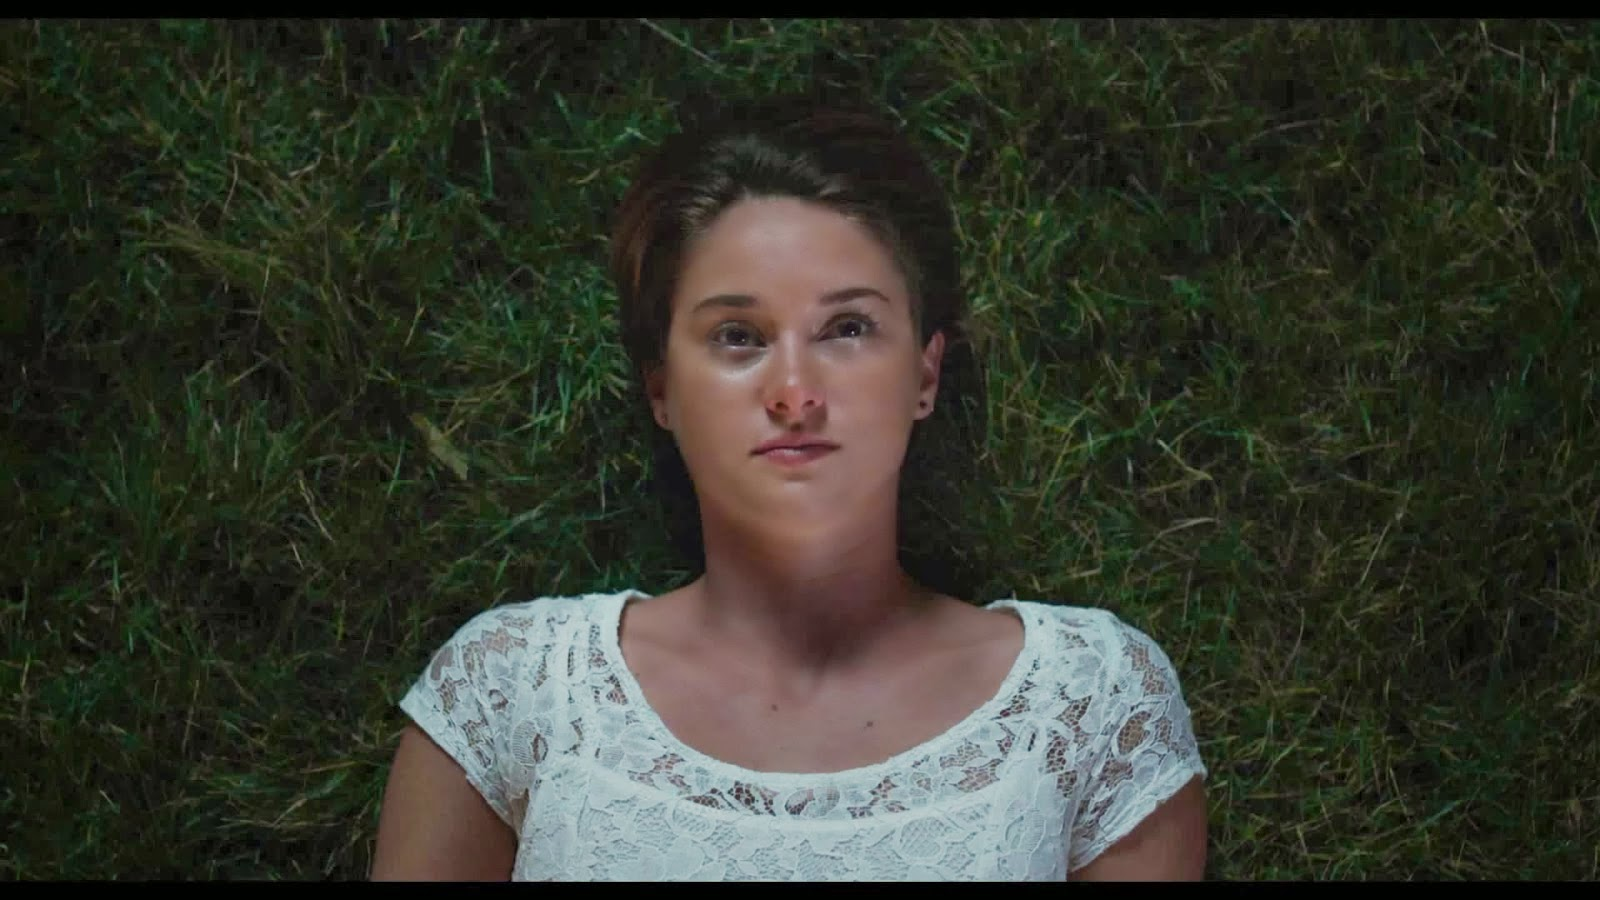 Good Wallpaper Movie The Fault In Our Stars - The_Fault_In_Our_Stars_Official_Trailer__kissthemgoodbye_net_0058  Best Photo Reference_101777.jpg